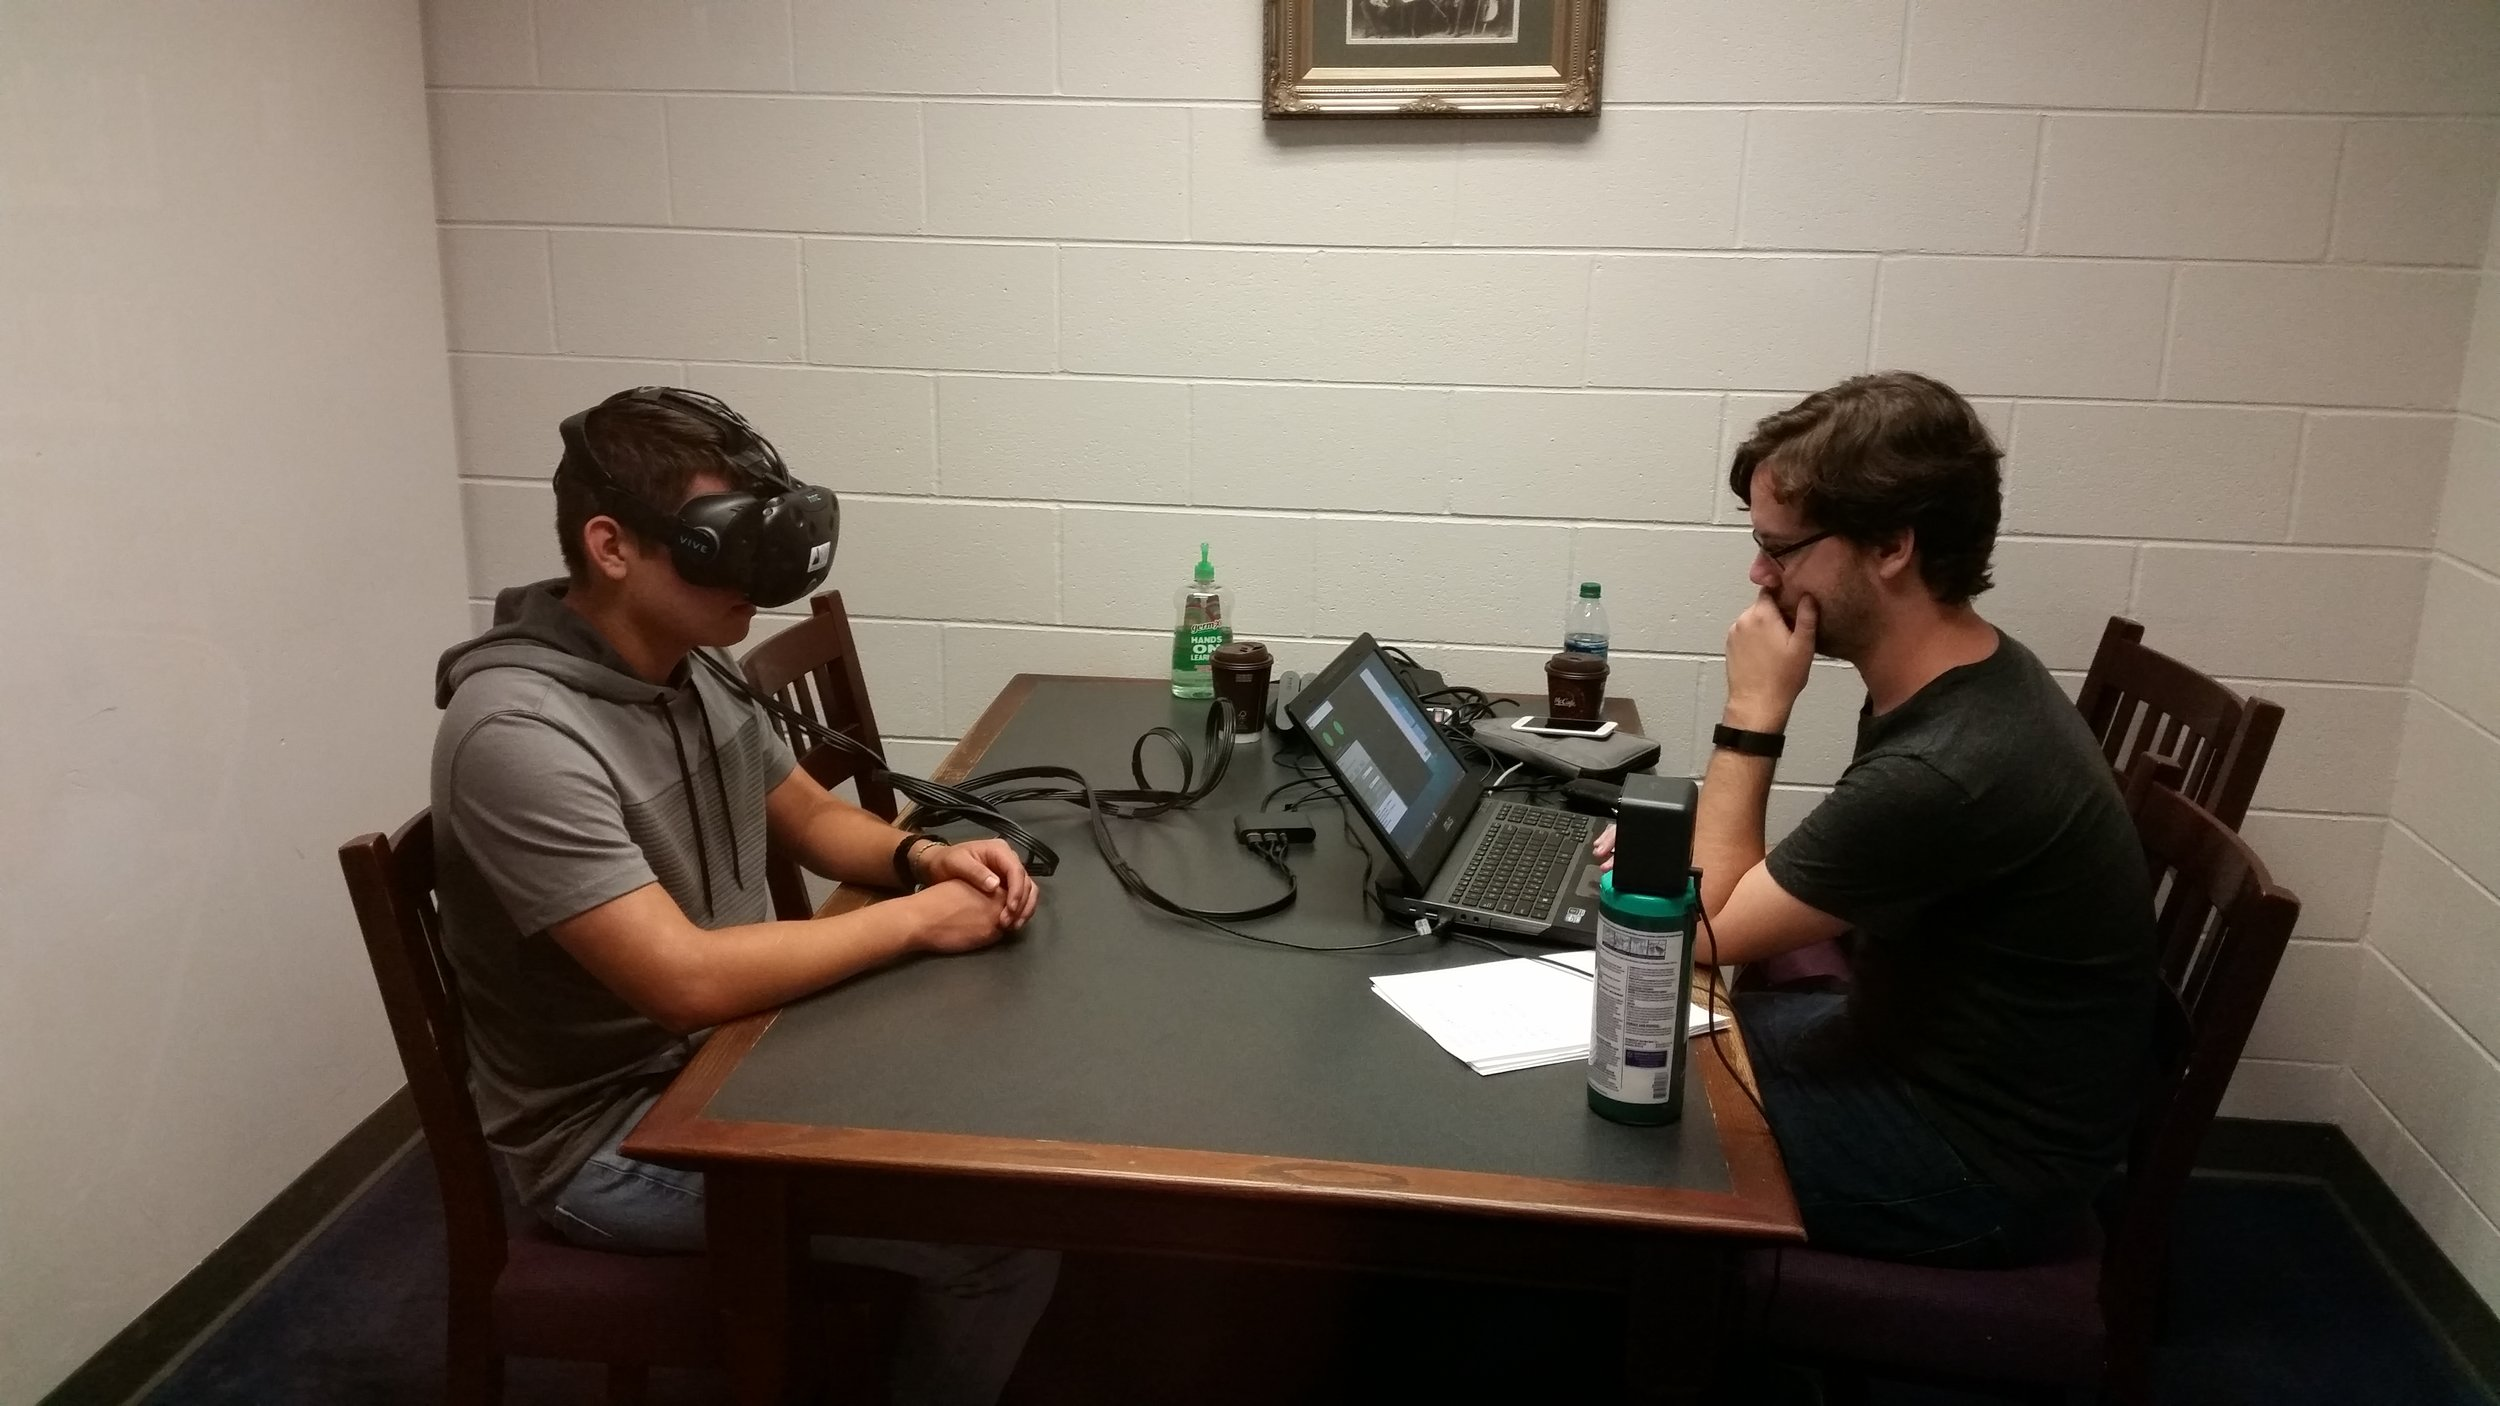 Saccadous CTO Hector Rieiro performs an eye tracking test on a student-athlete